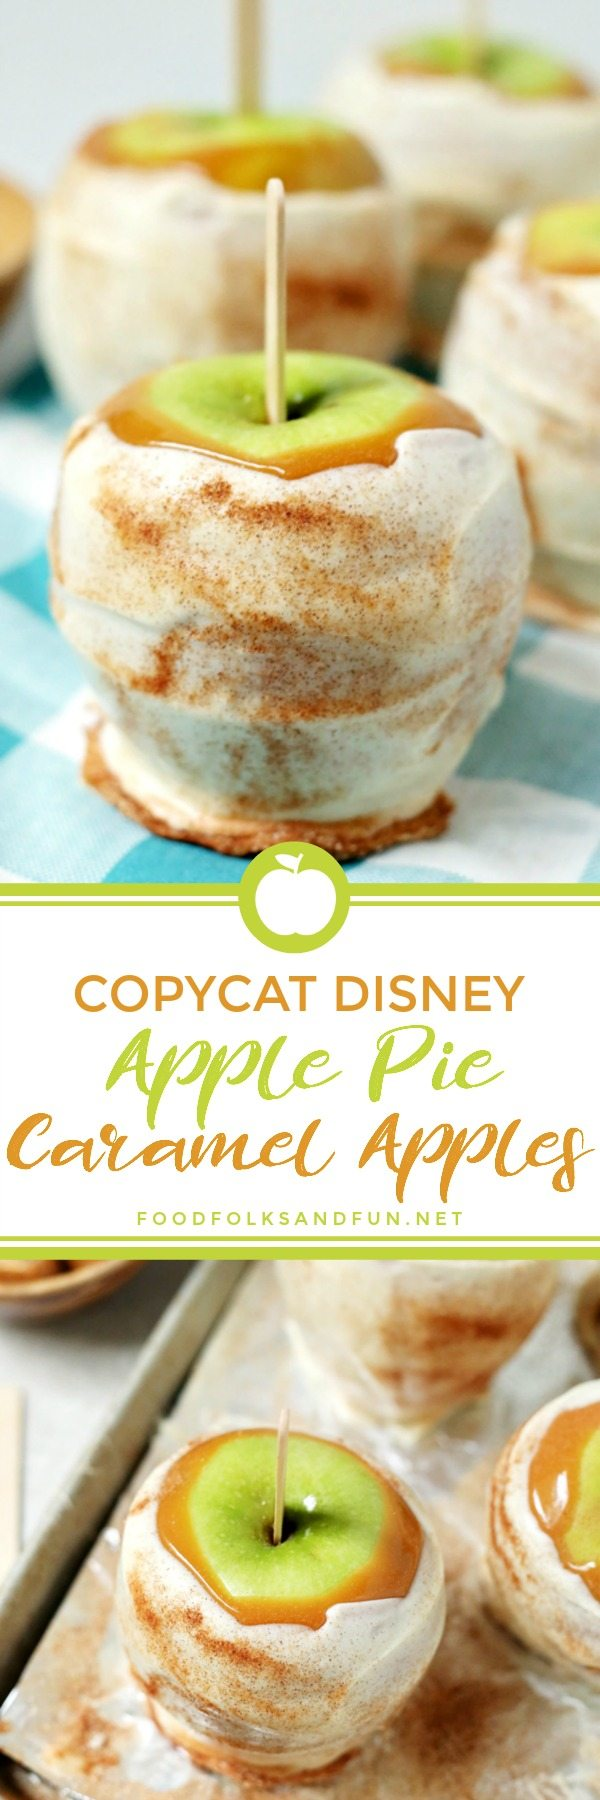 These Copycat Disney Apple Pie Caramel Apples tastes just like the ones at Disneyland! They're covered with sticky caramel, dipped in white chocolate, and sprinkled with cinnamon sugar! via @foodfolksandfun